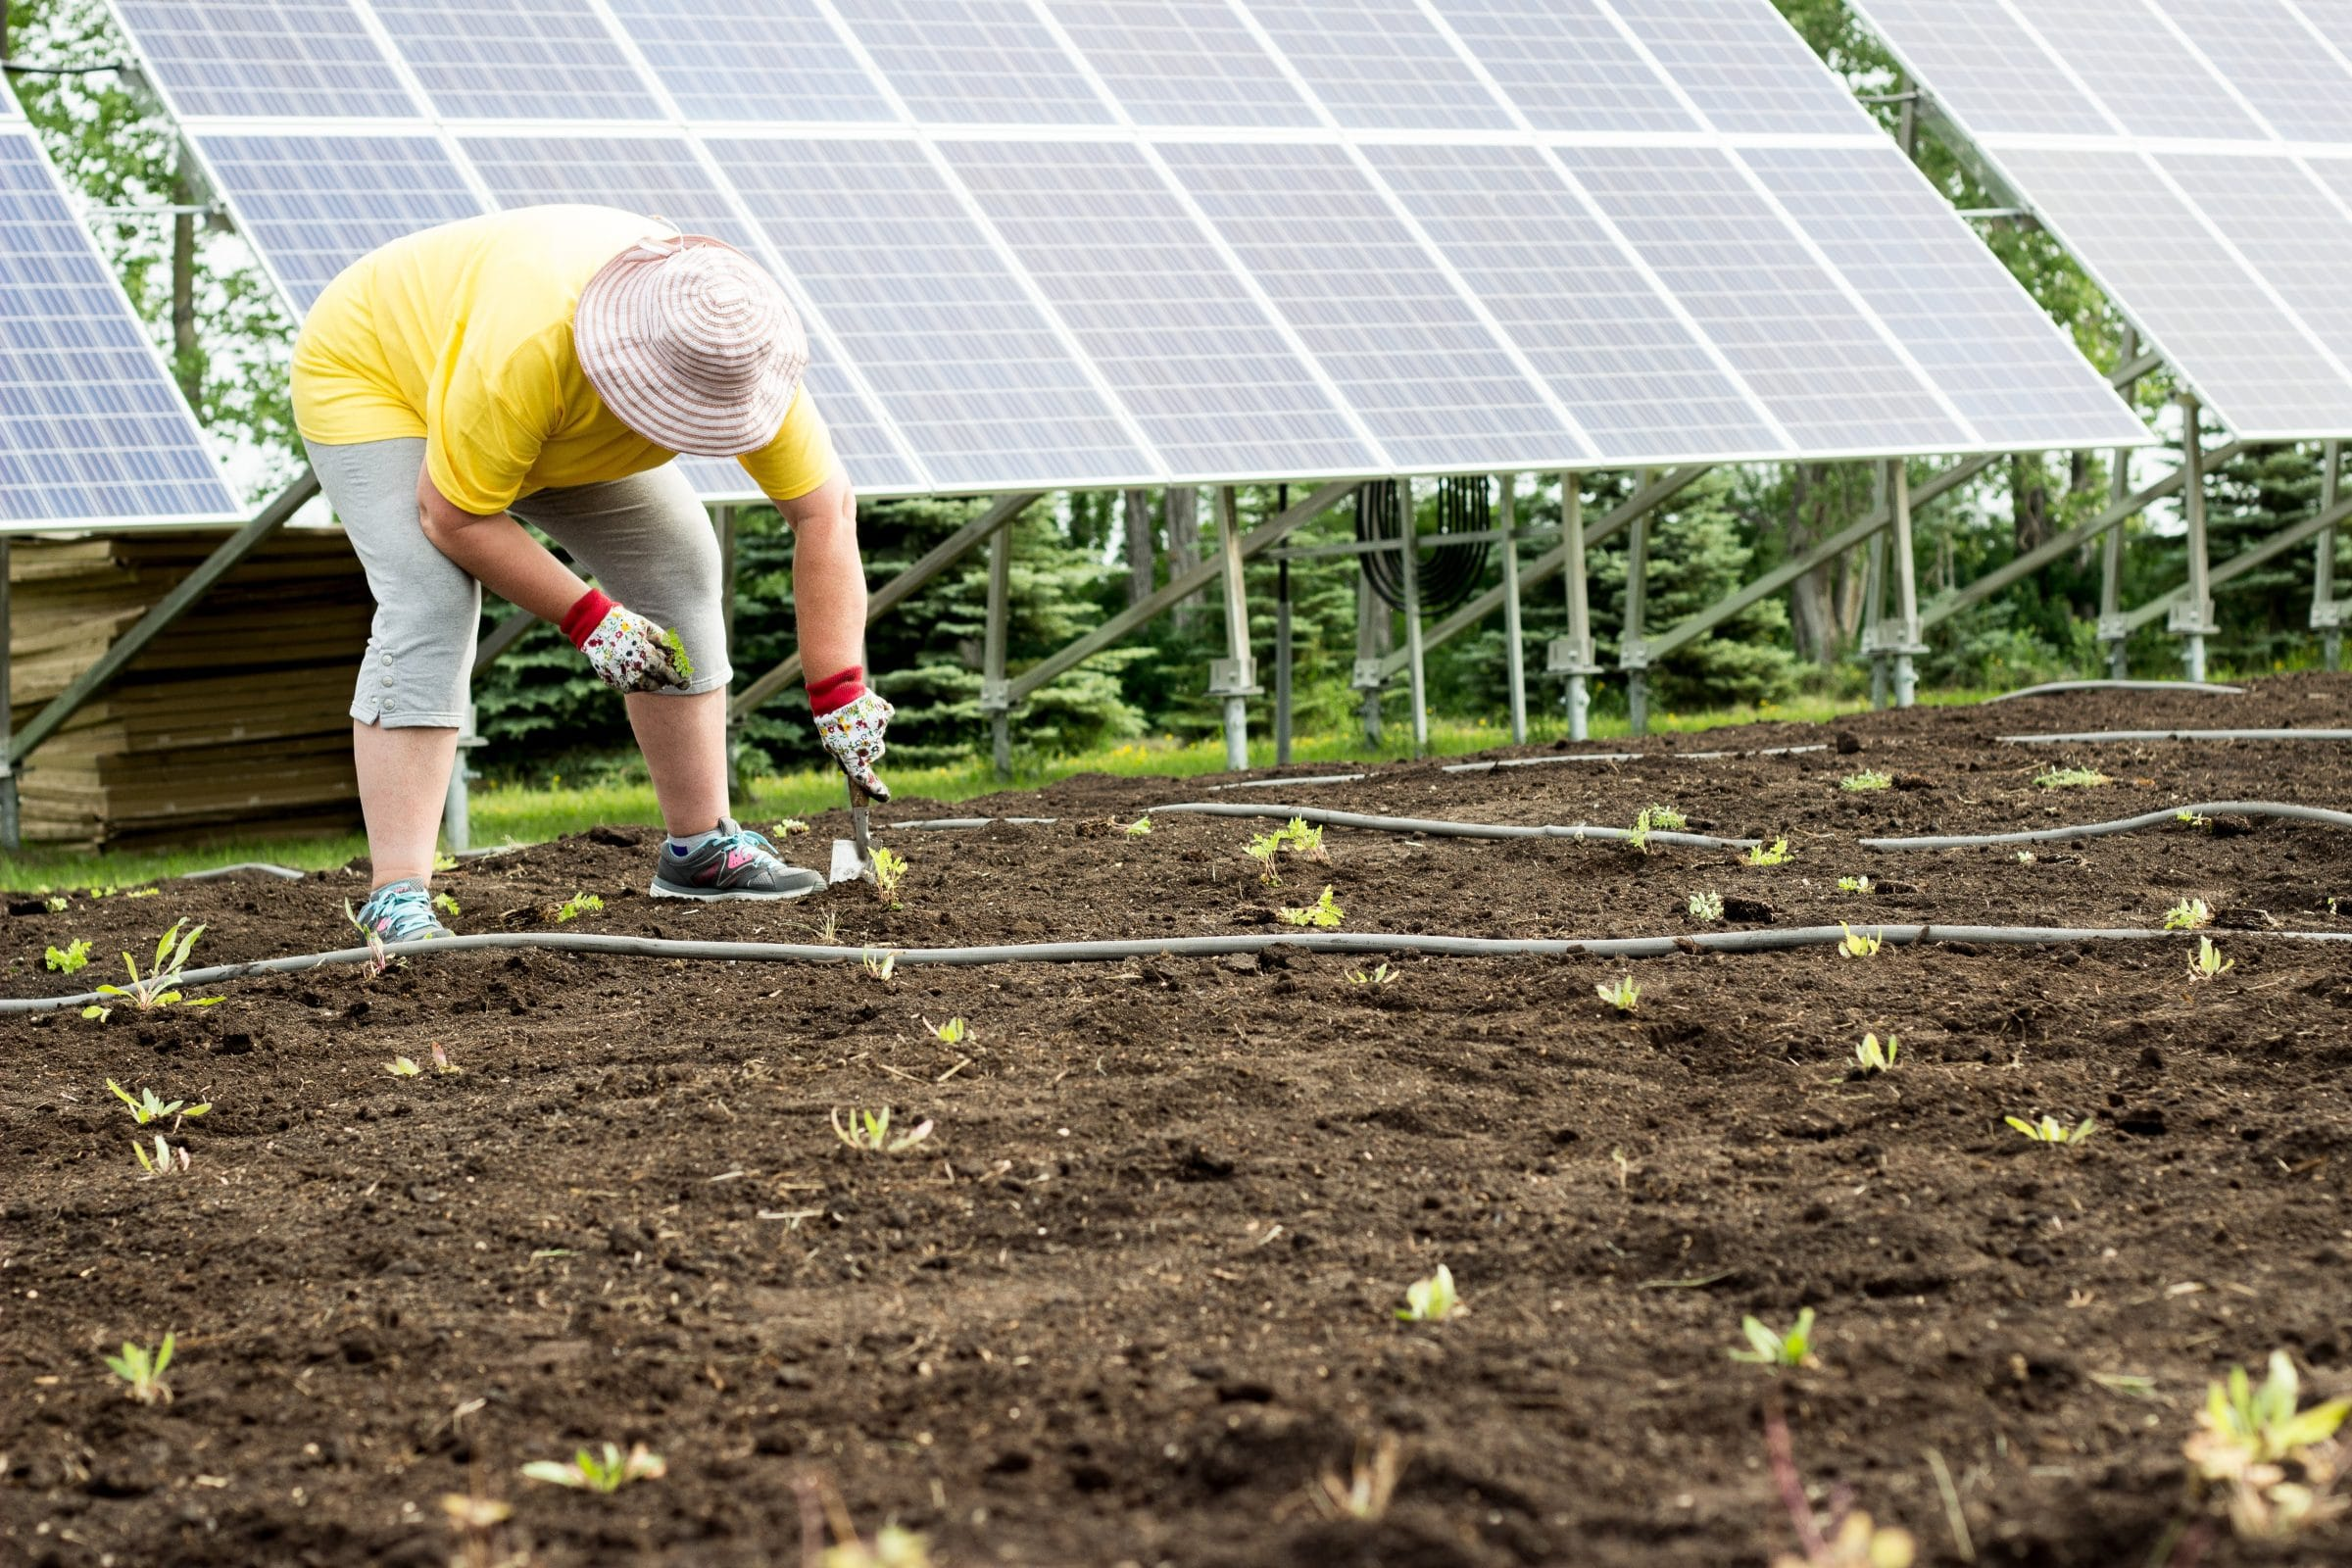 A volunteer plants a small flower in dirt in front of the solar panels in summer.